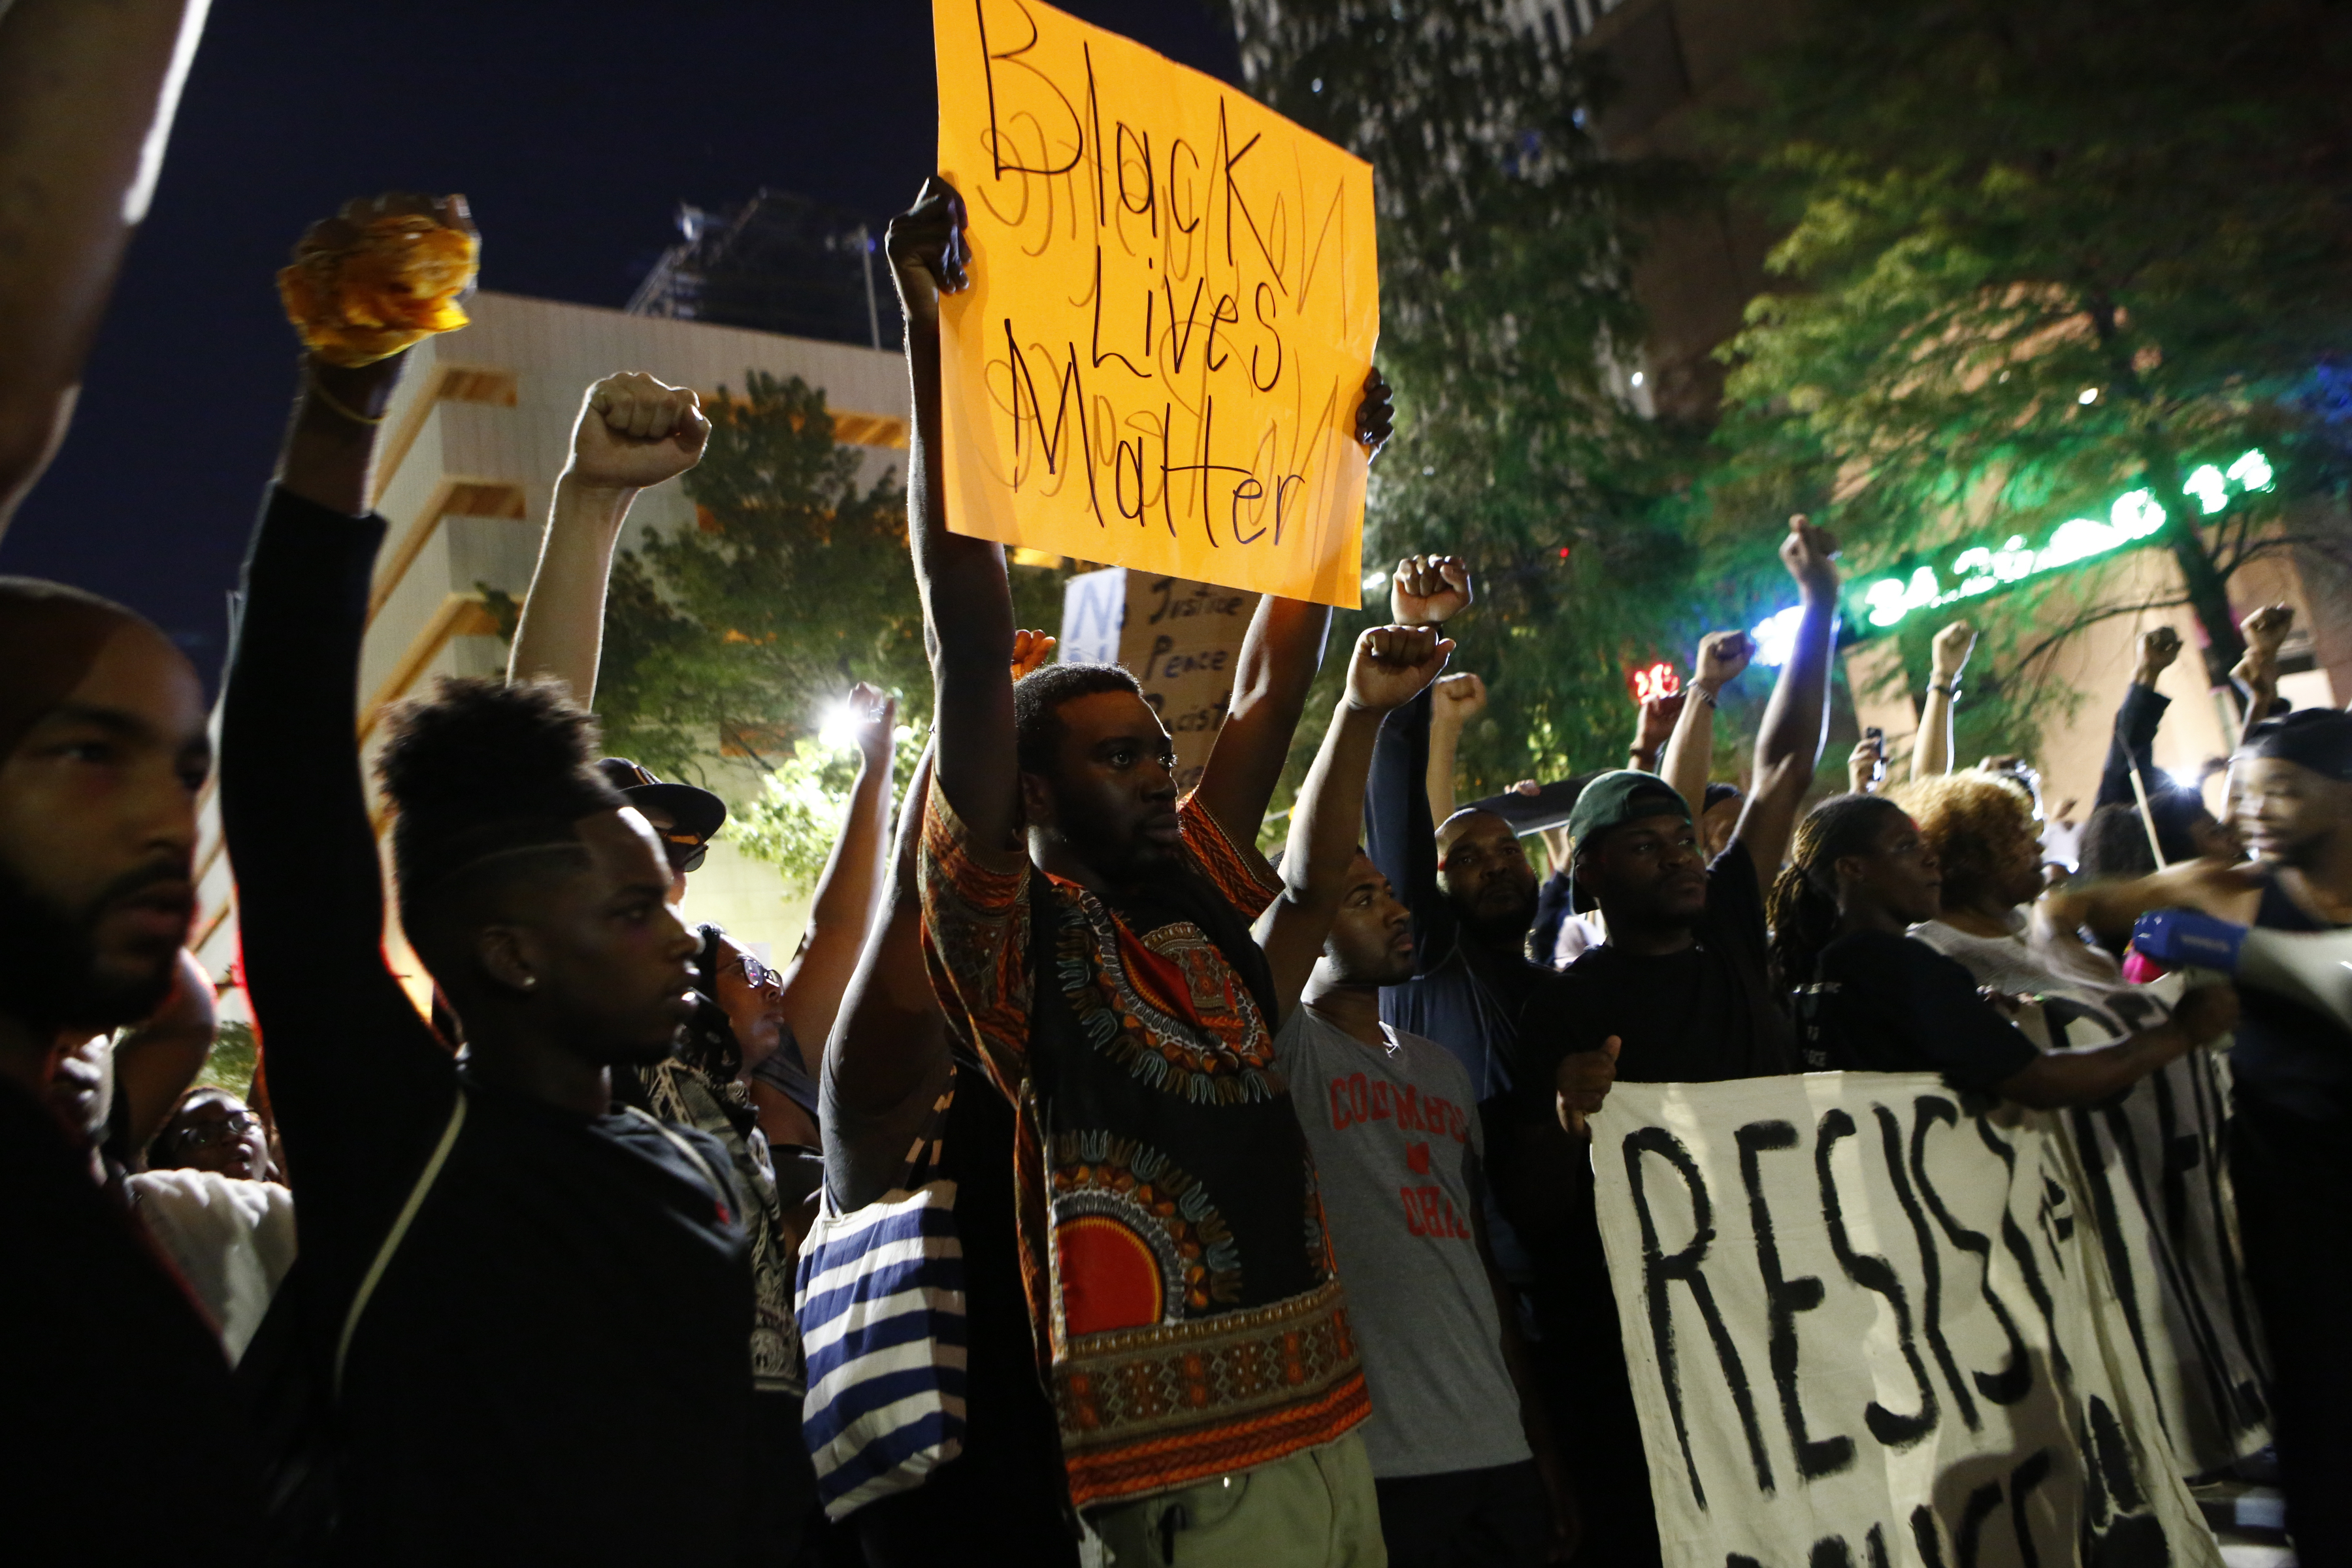 Residents and activists march in the streets amid heavy police and North Carolina National Guard presence as they protest the death of Keith Lamont Scott Sept. 23, 2016 in Charlotte, North Carolina.